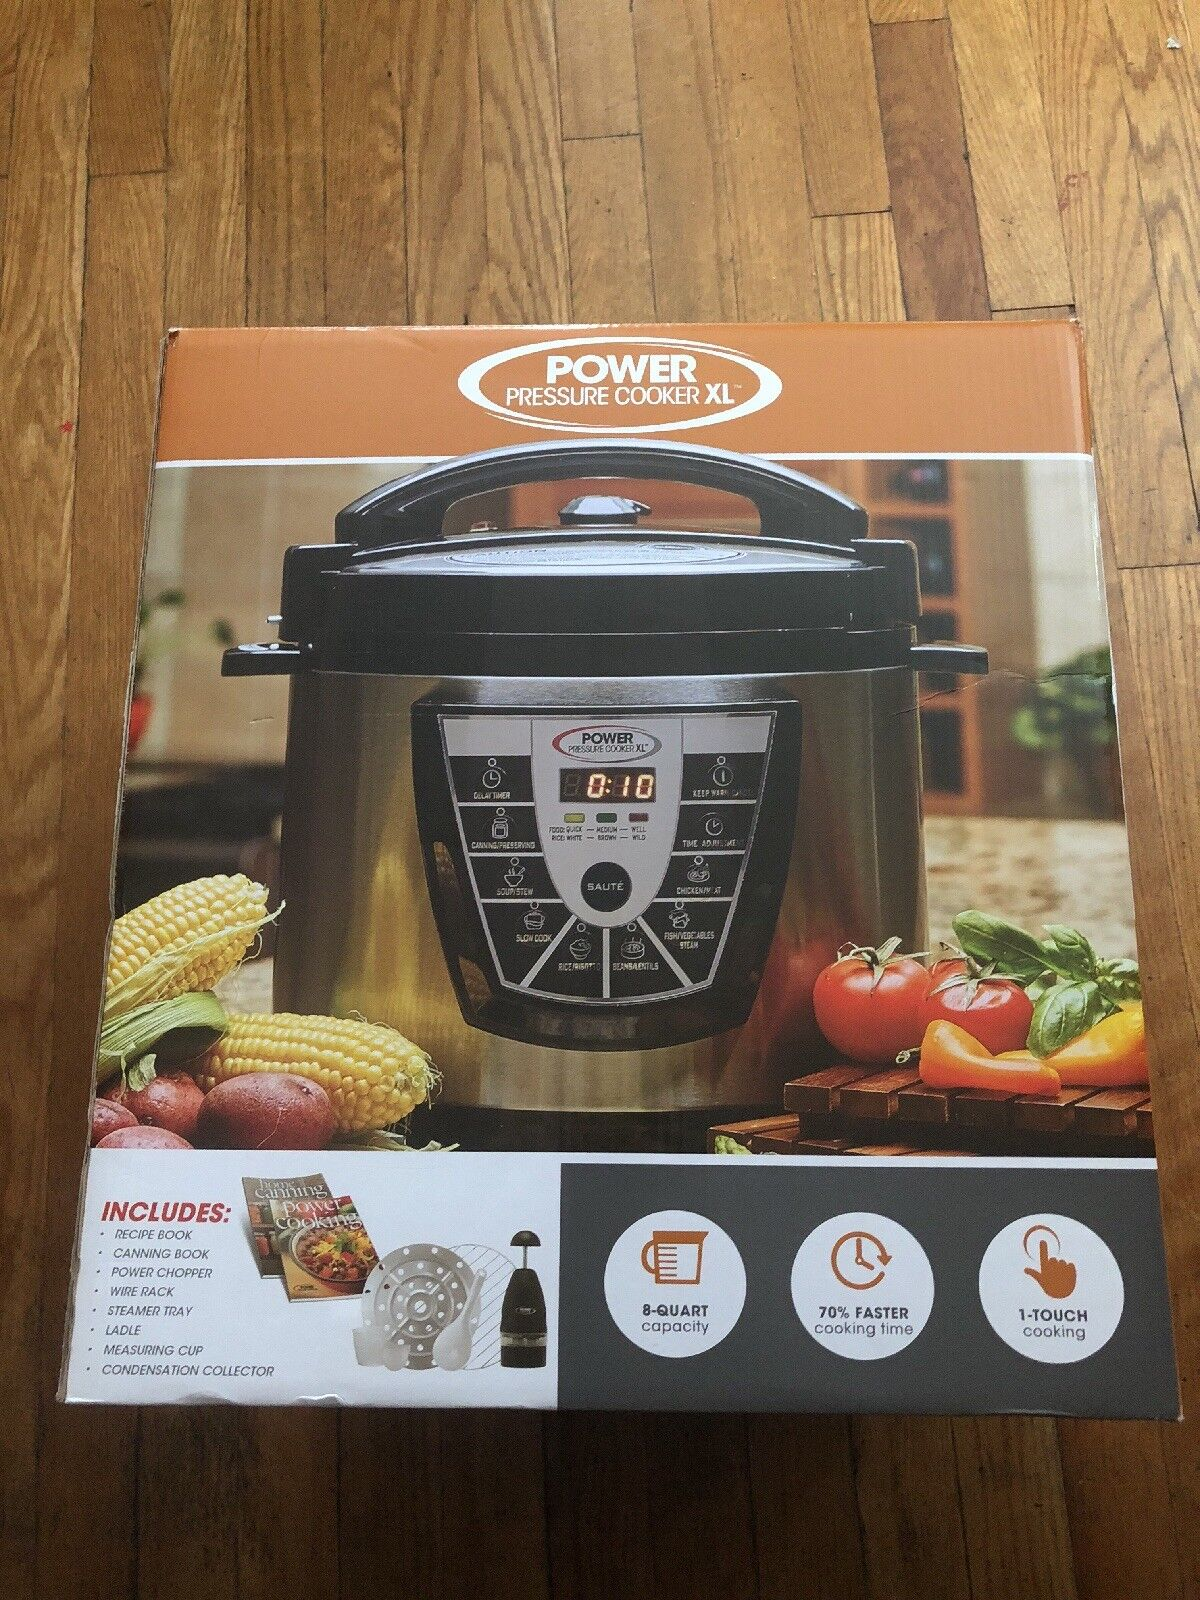 Power pressure cooker xl 8 qt